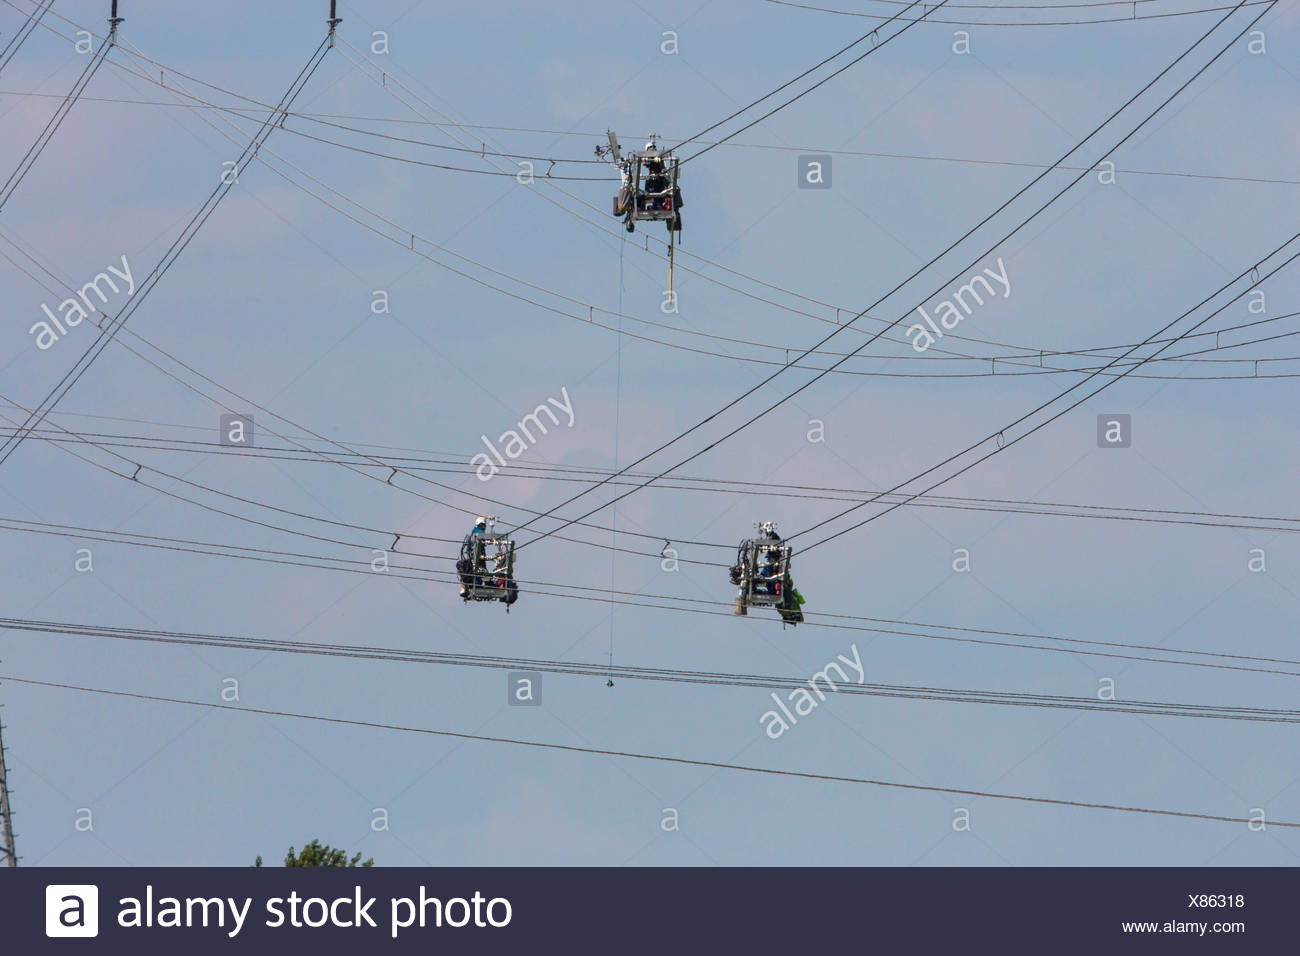 maintenance work on high voltage power lines, Germany, Bavaria - Stock Image